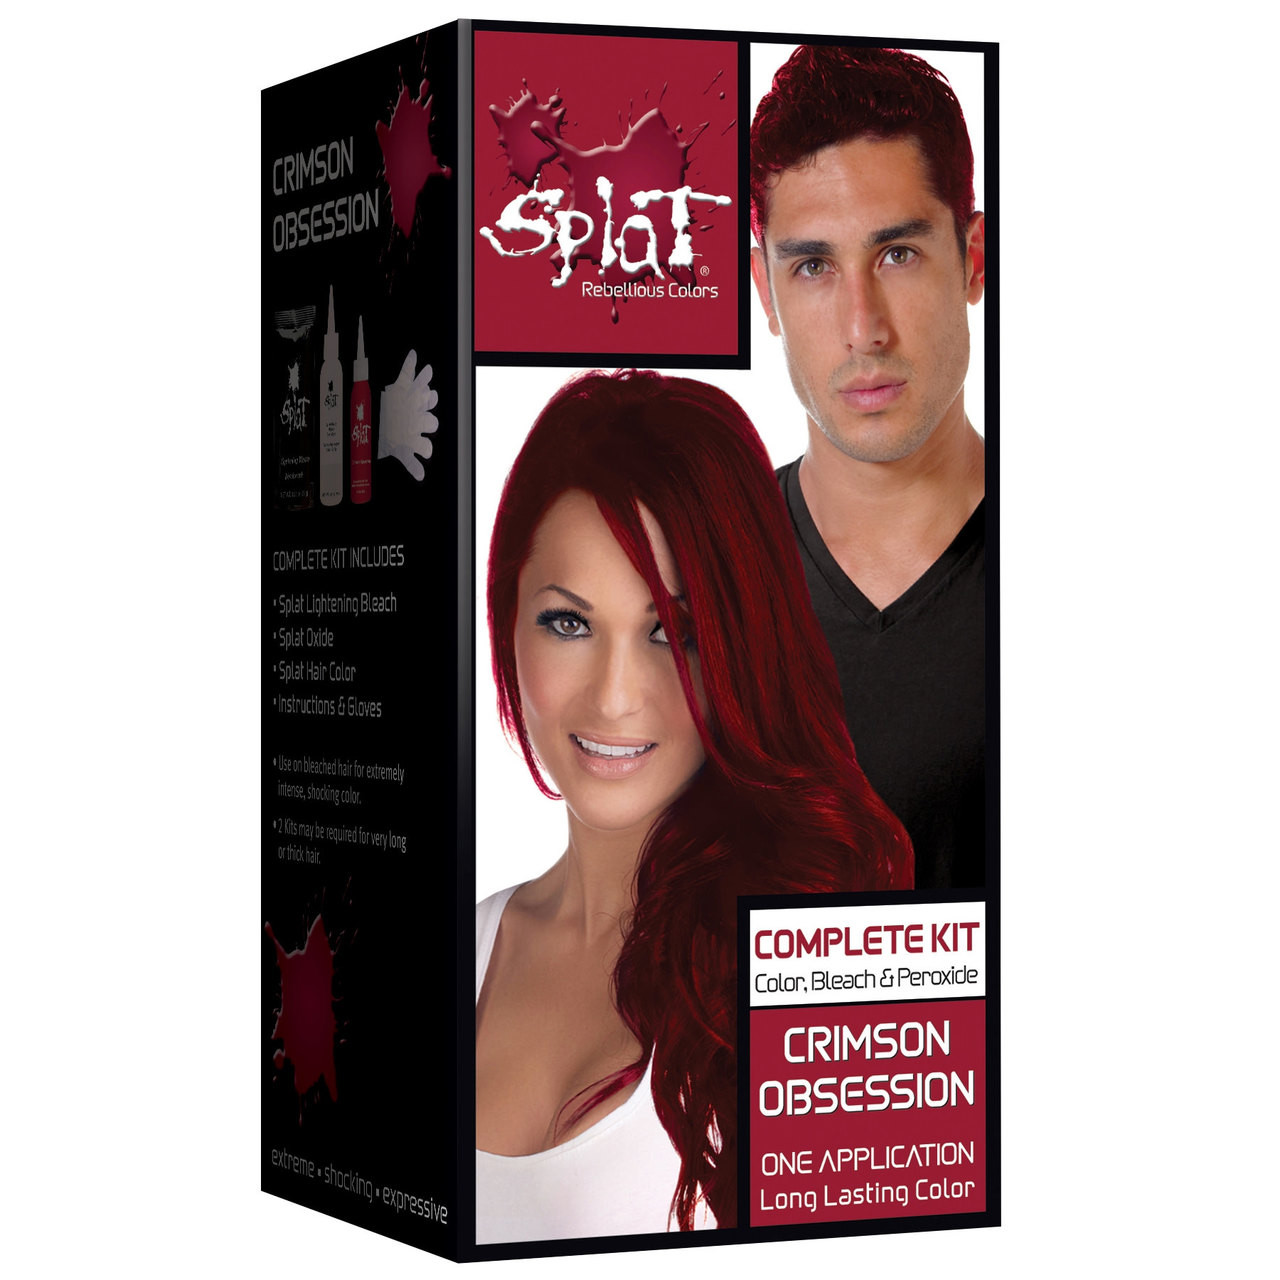 Splat Rebellious Colors Semi Permanent Hair Dye Crimson Obsession